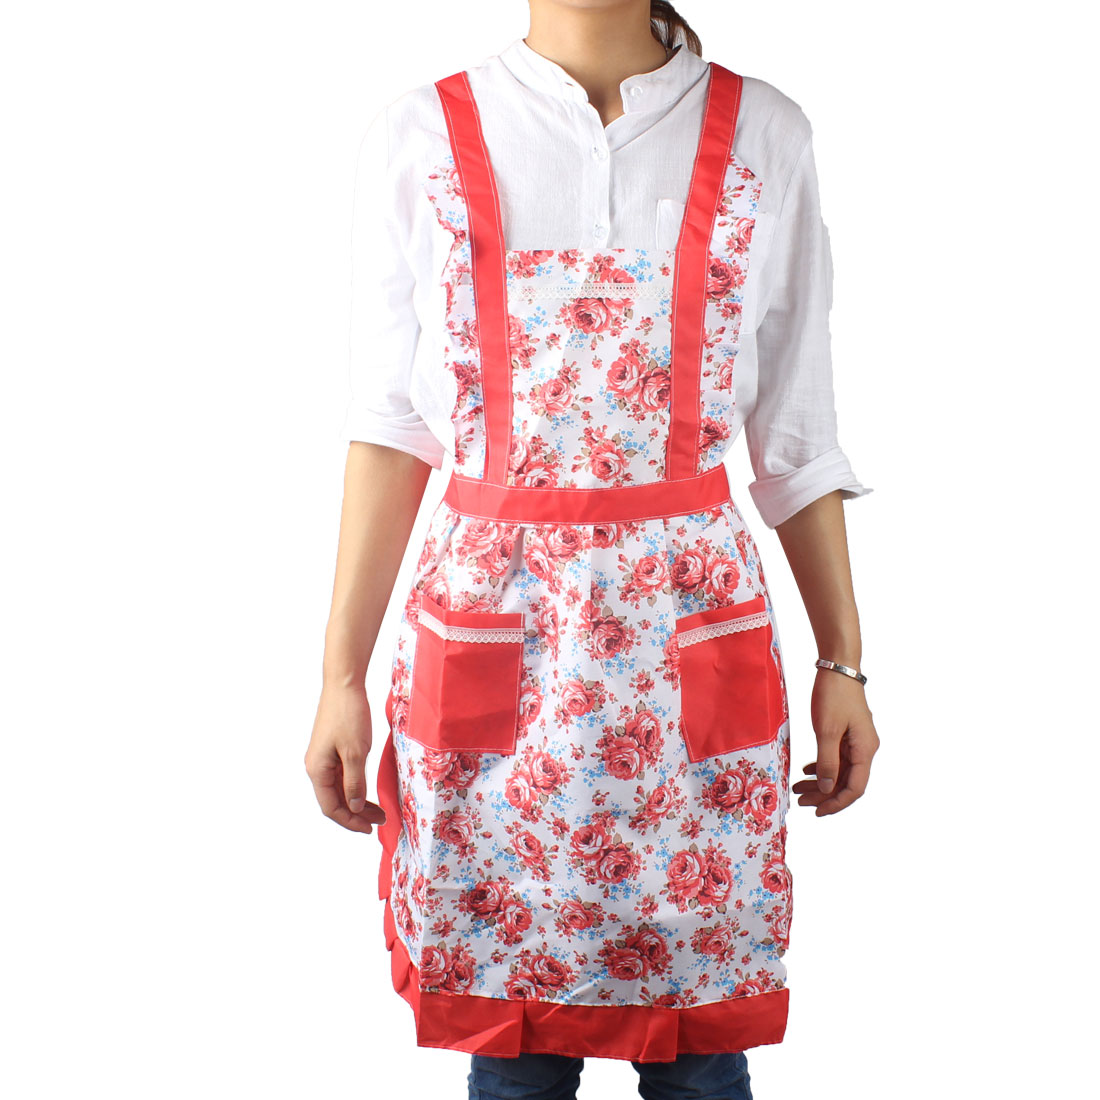 Cooking Fabric Blooming Rose Print 2 Front Pocket Self Tie Bib Aprons Red